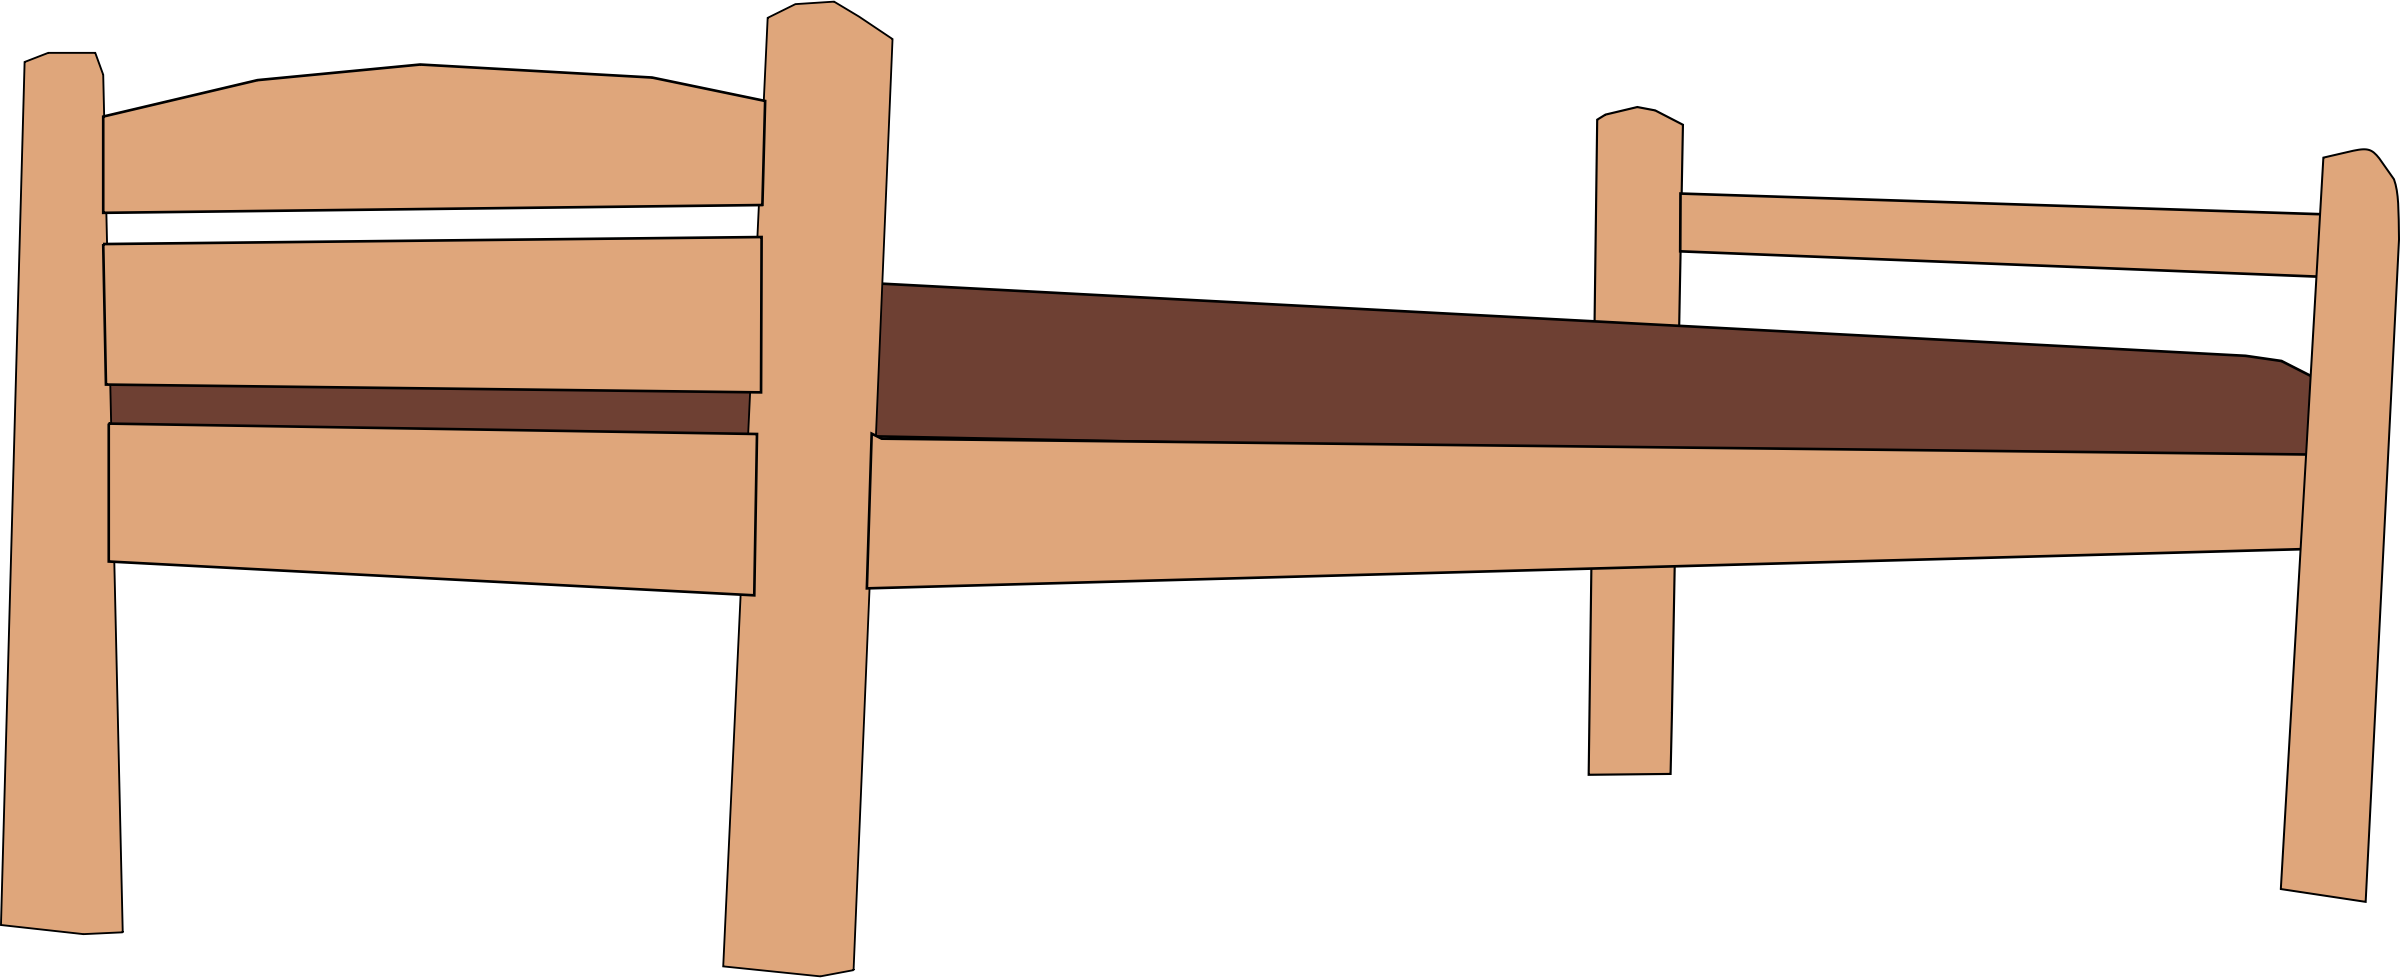 Clipart bed wooden bed. Plank big image png